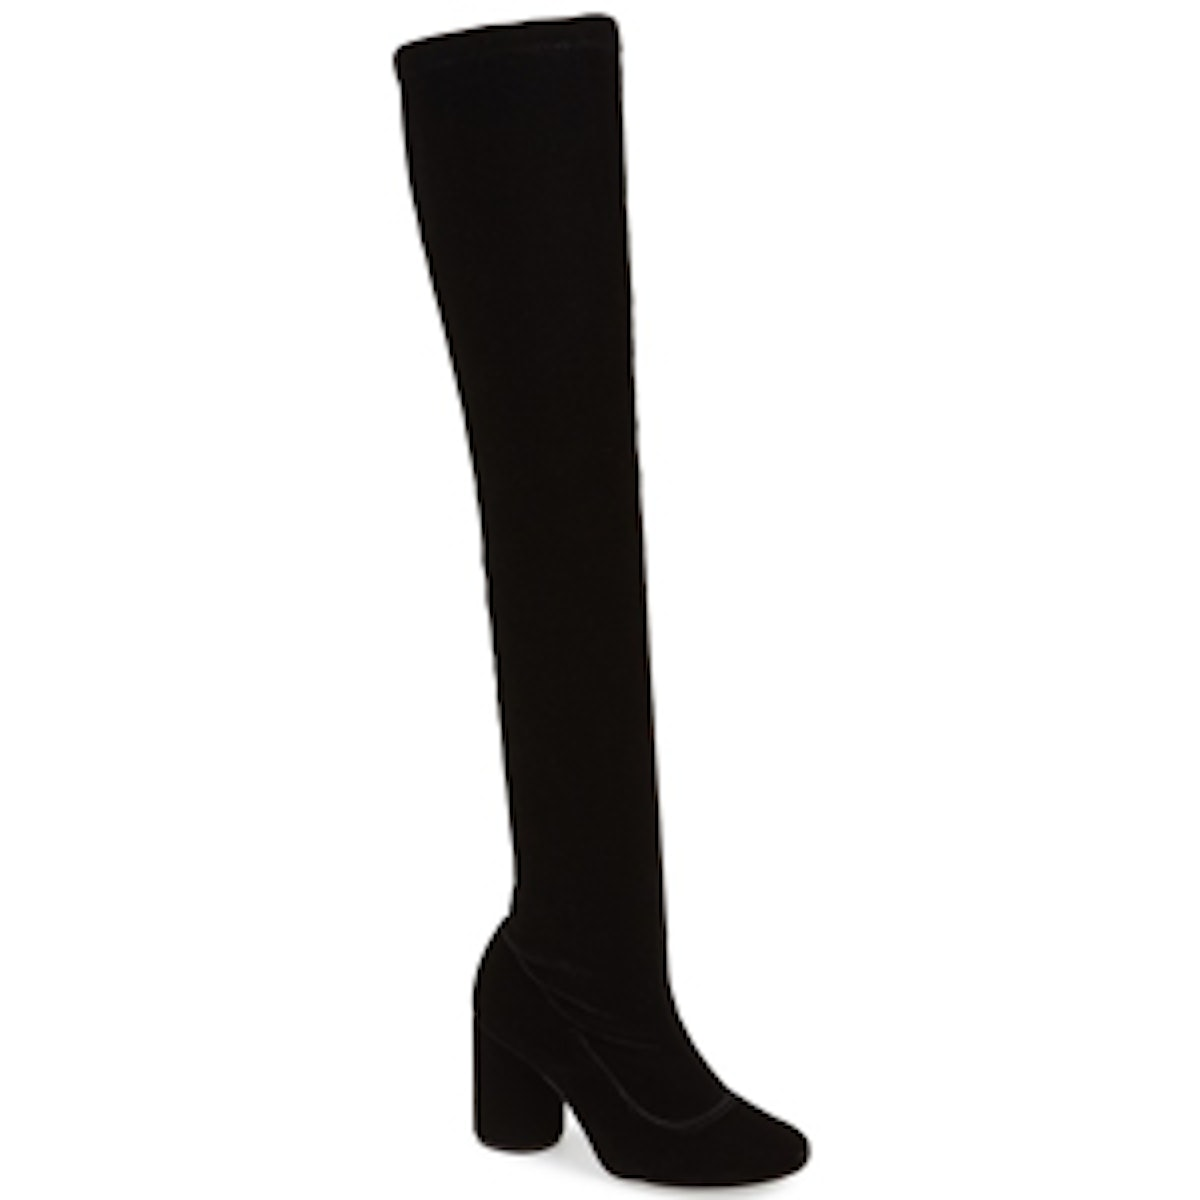 Private Over-The-Knee Boots